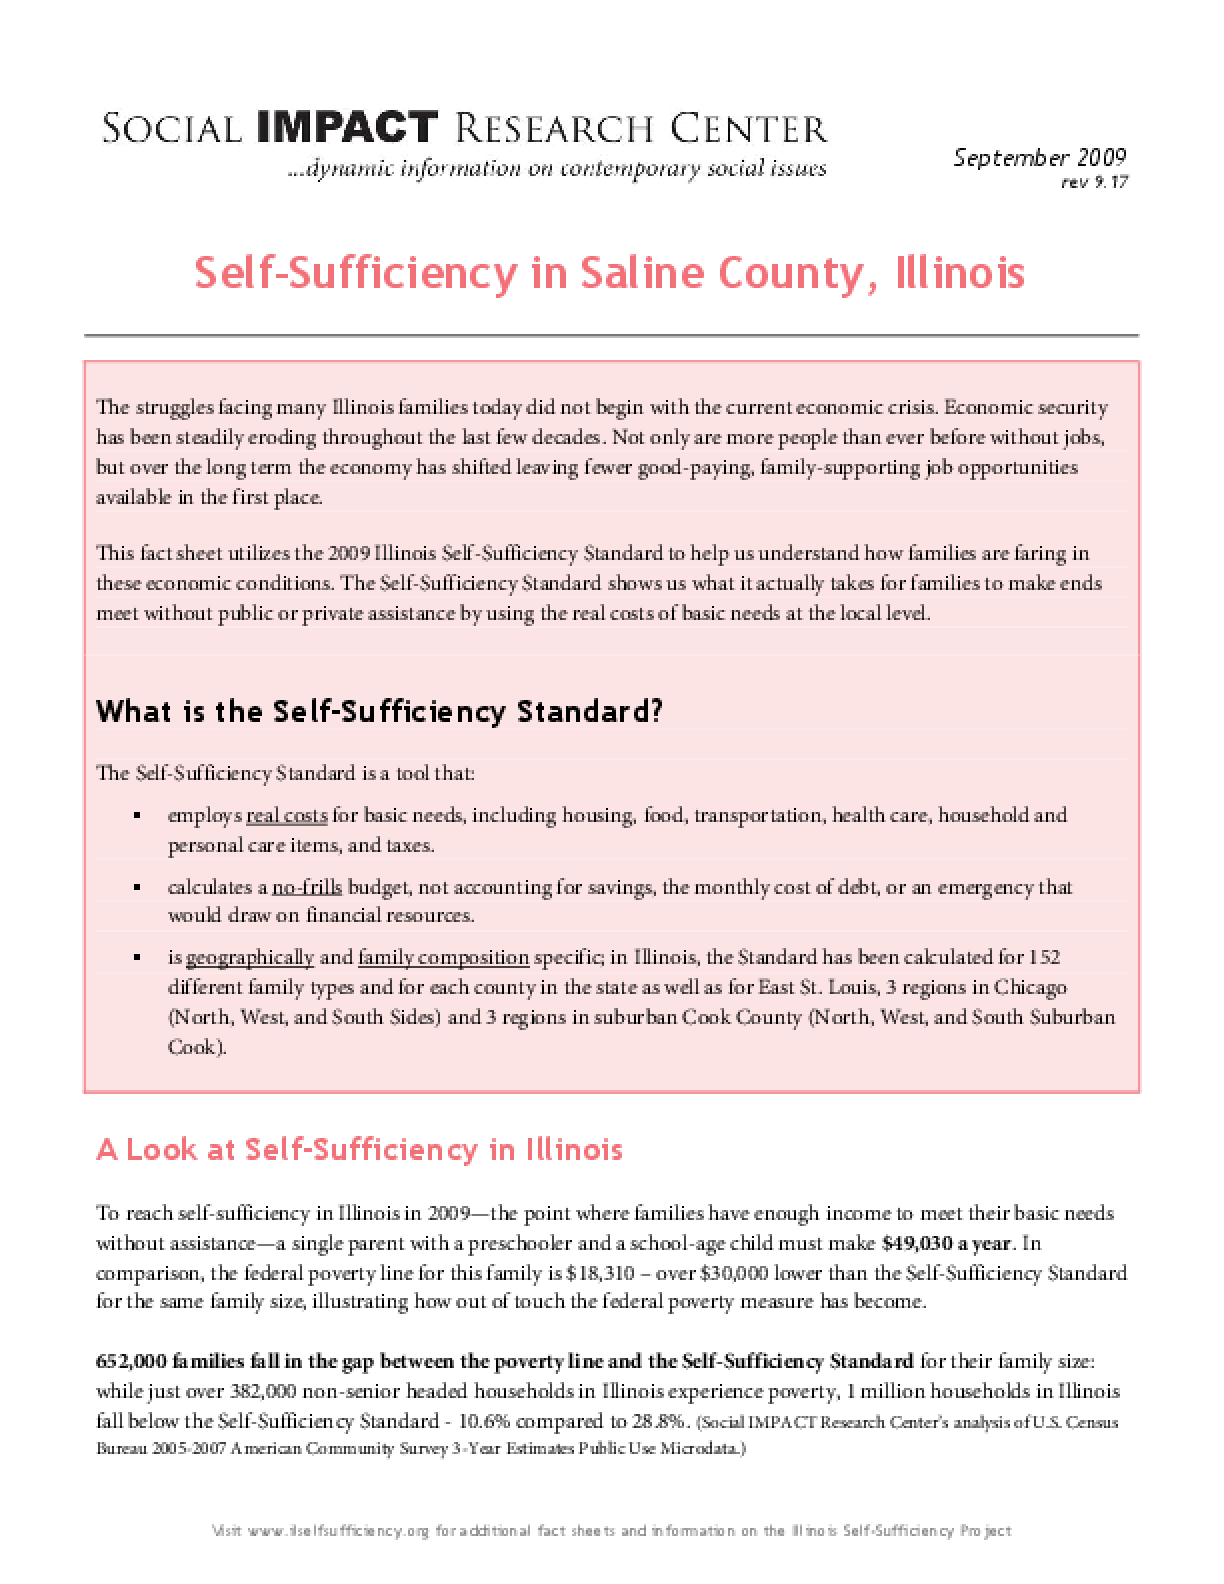 Self-Sufficiency in Saline County, Illinois